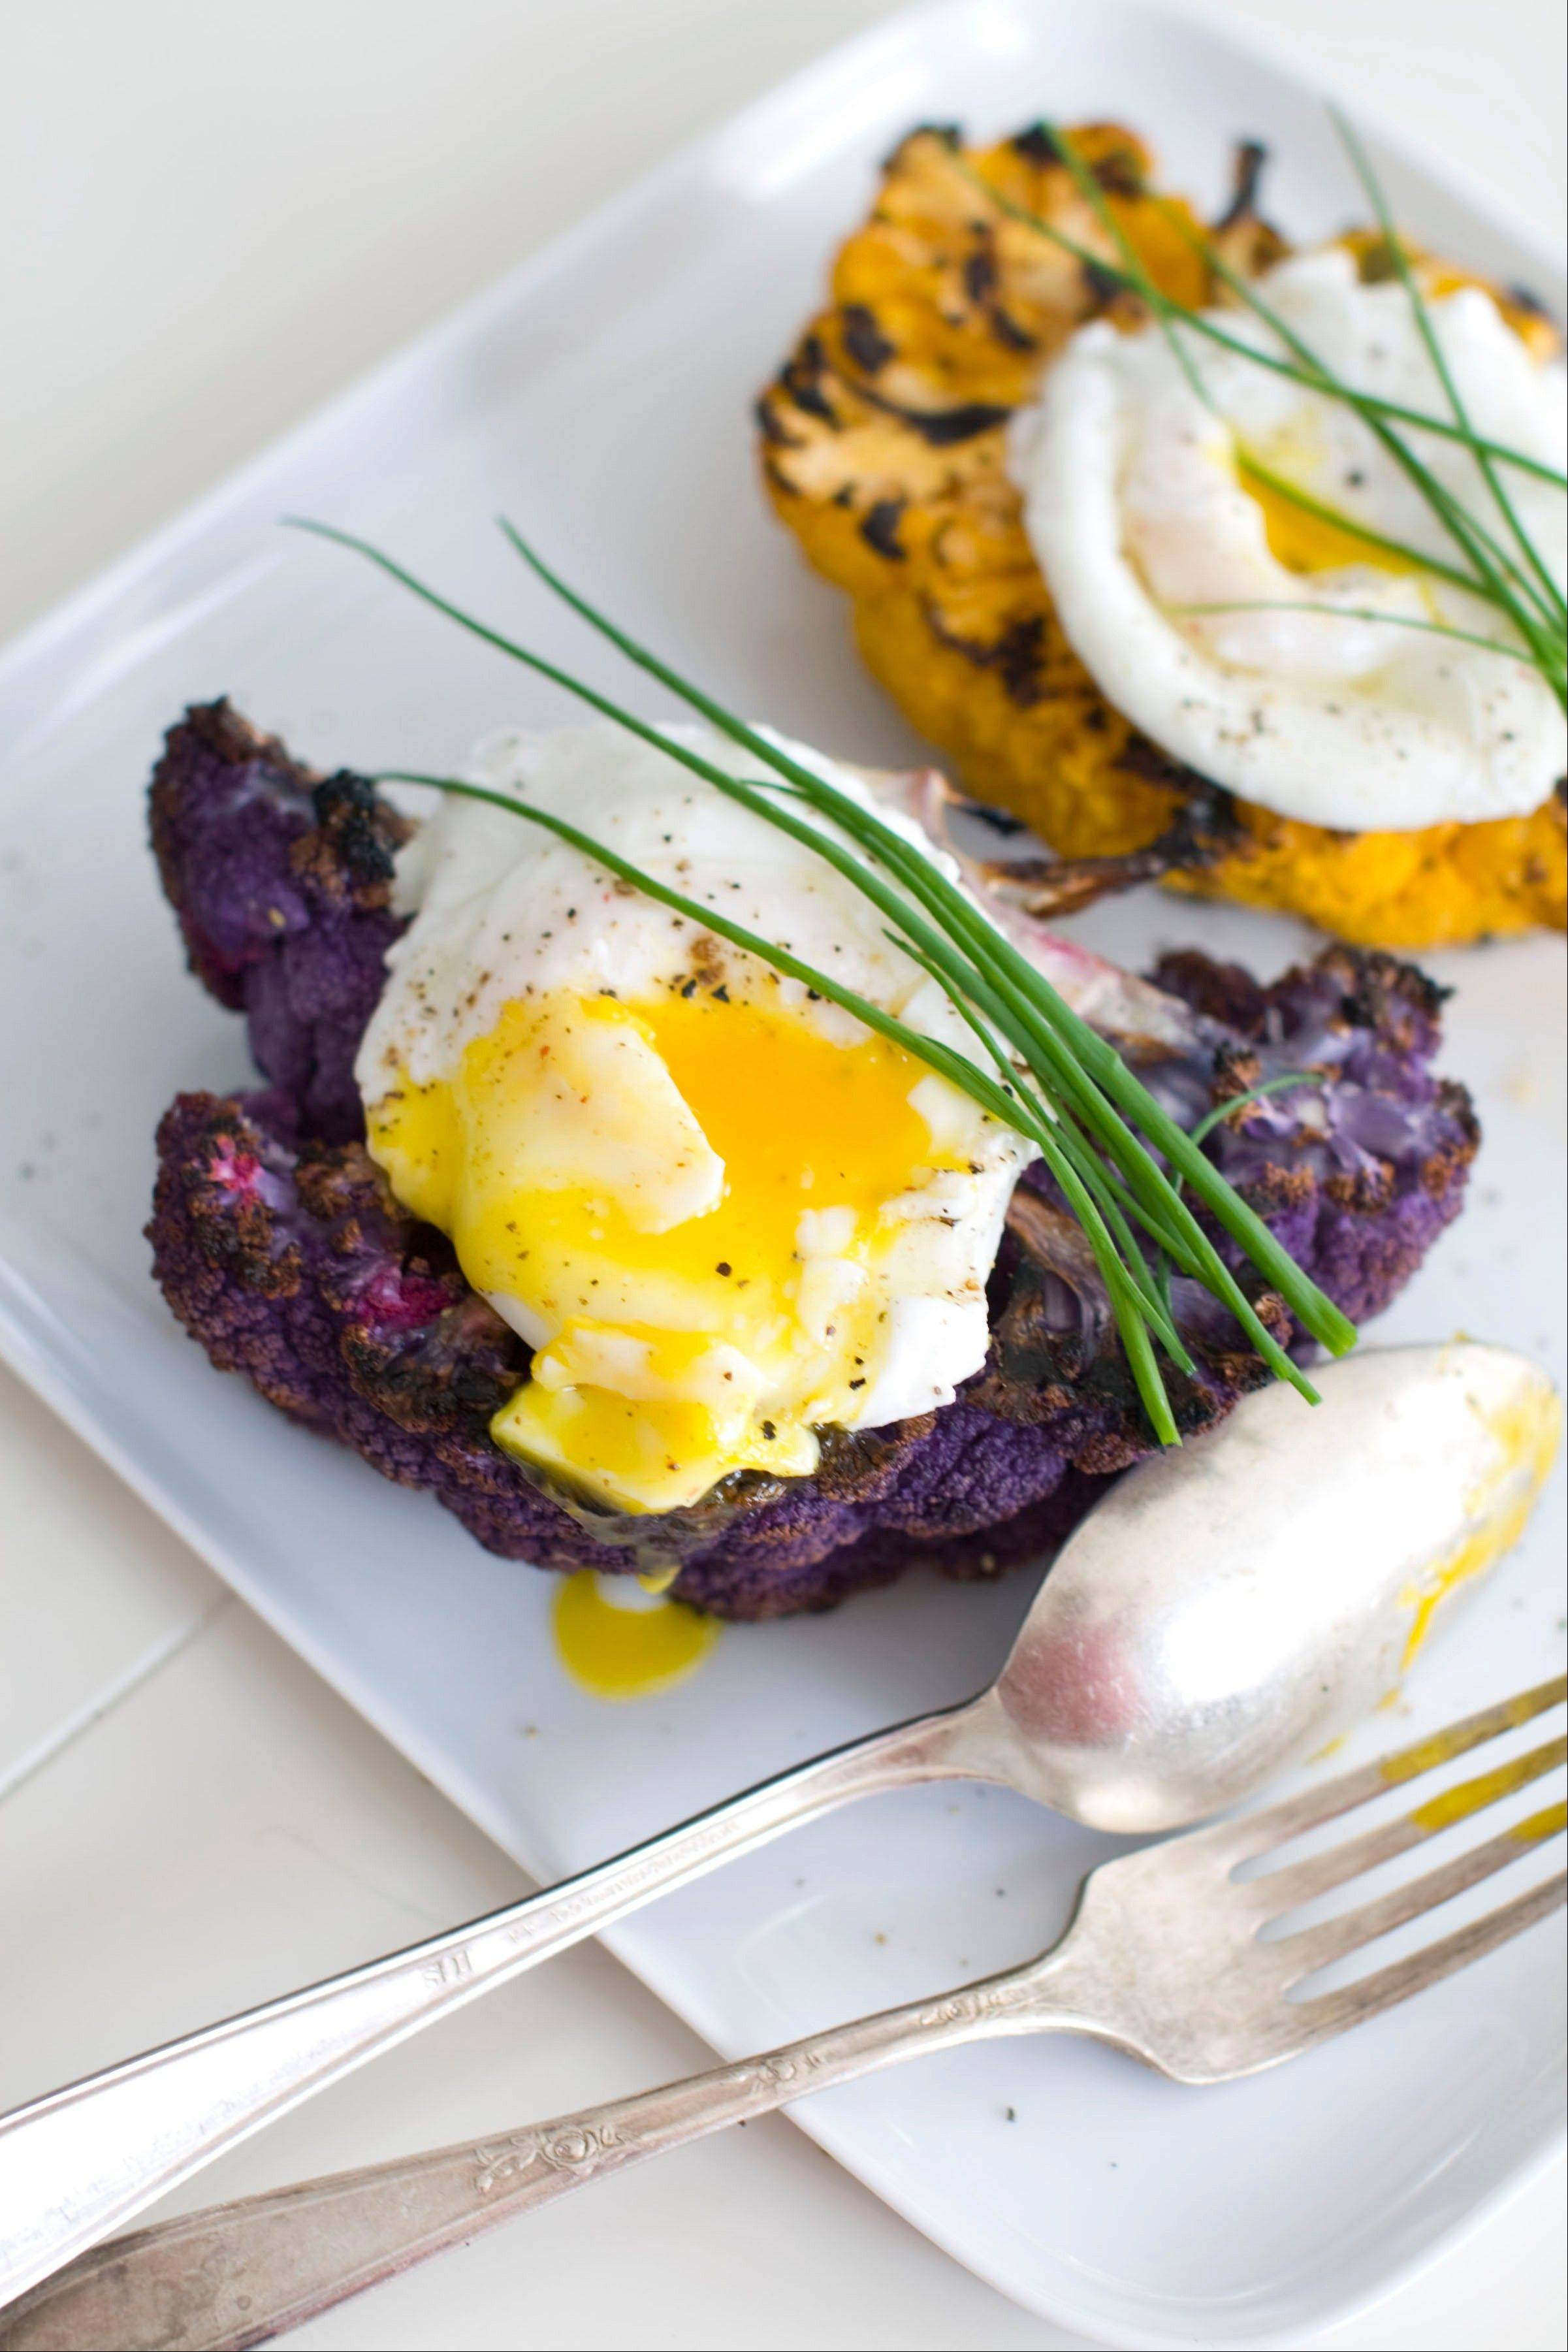 Purple cauliflower with poached eggs and truffle oil